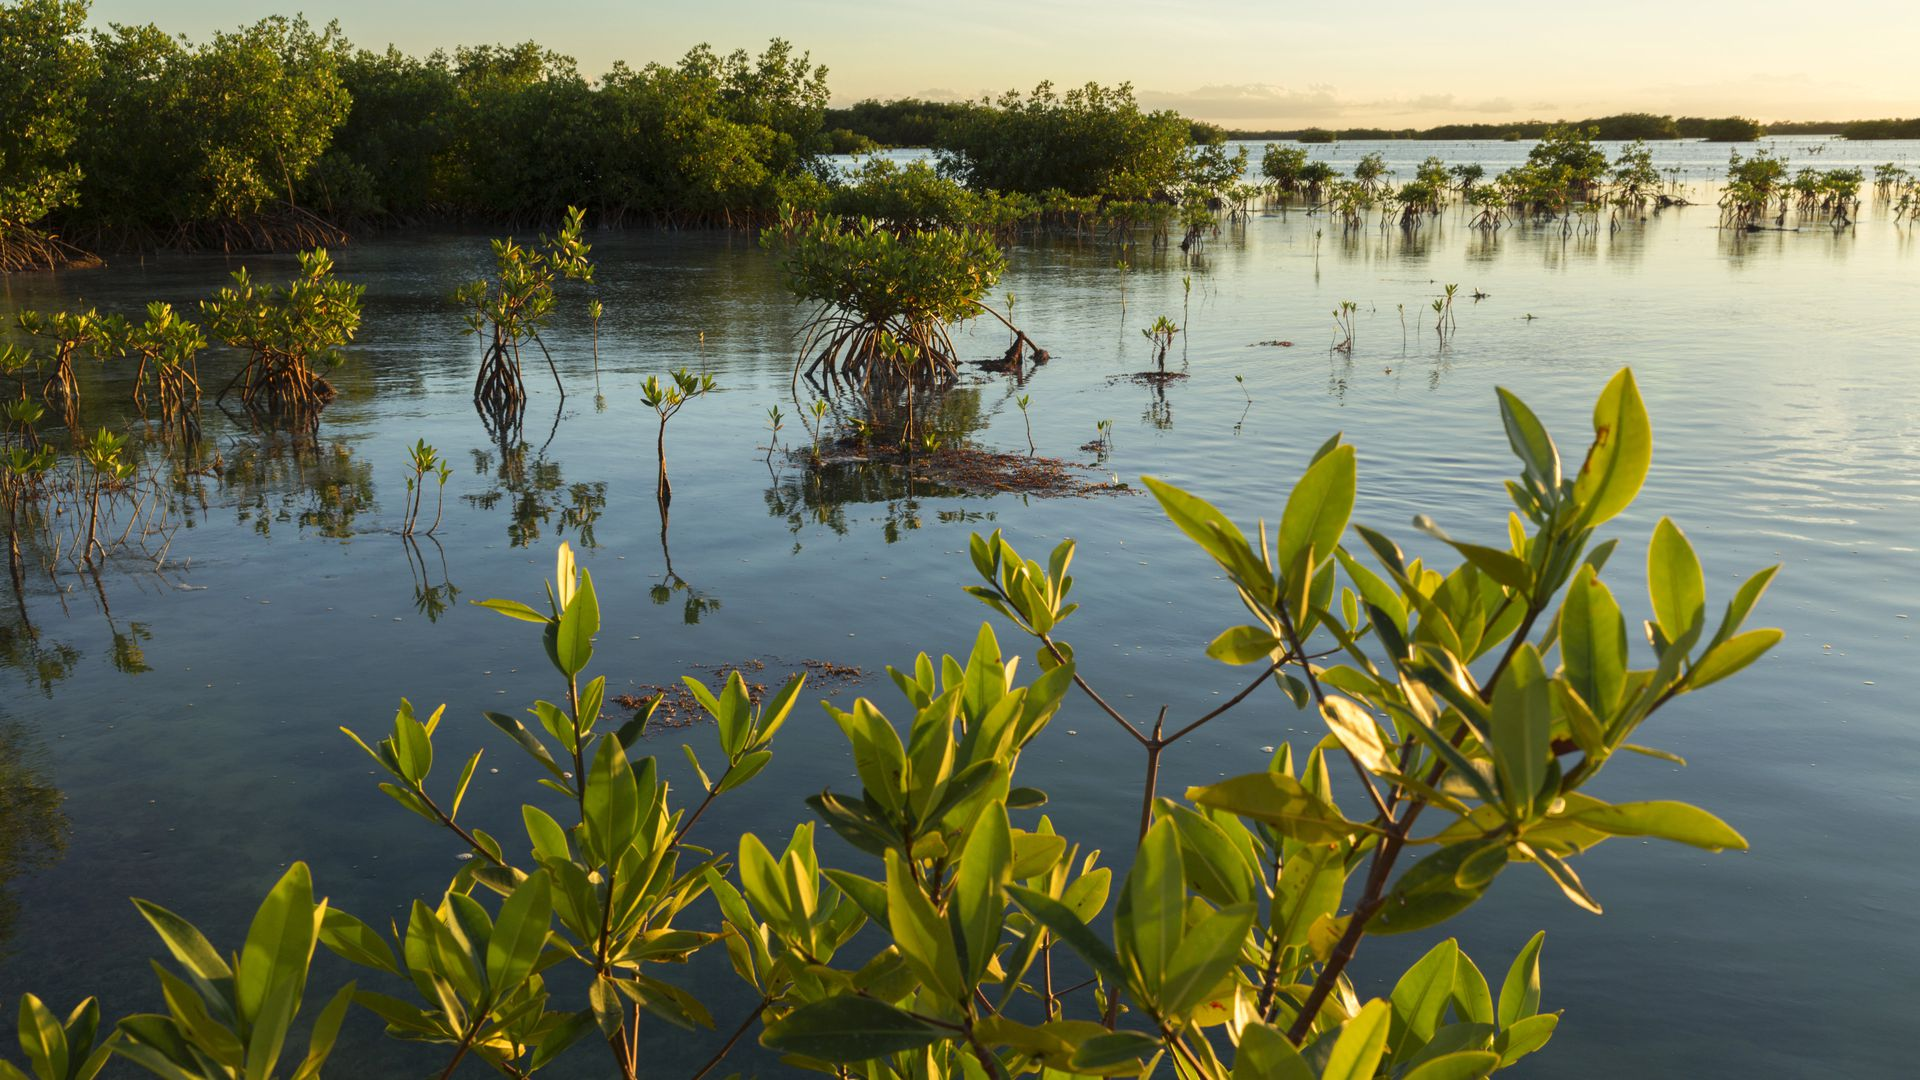 Mangrove forest, which is an ecosystem at particular risk.